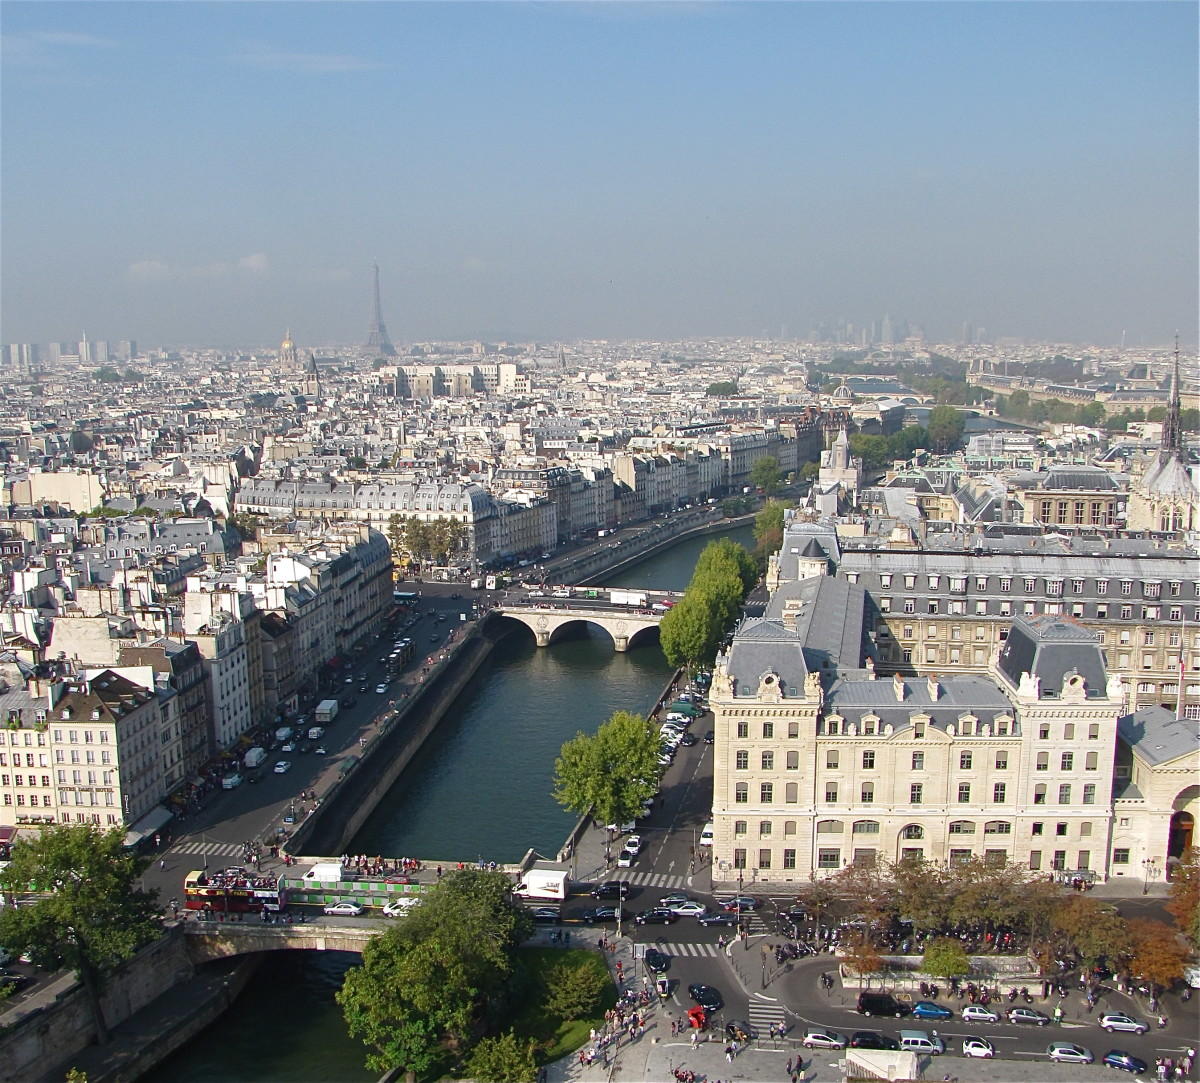 A view of Paris from the top of the Towers